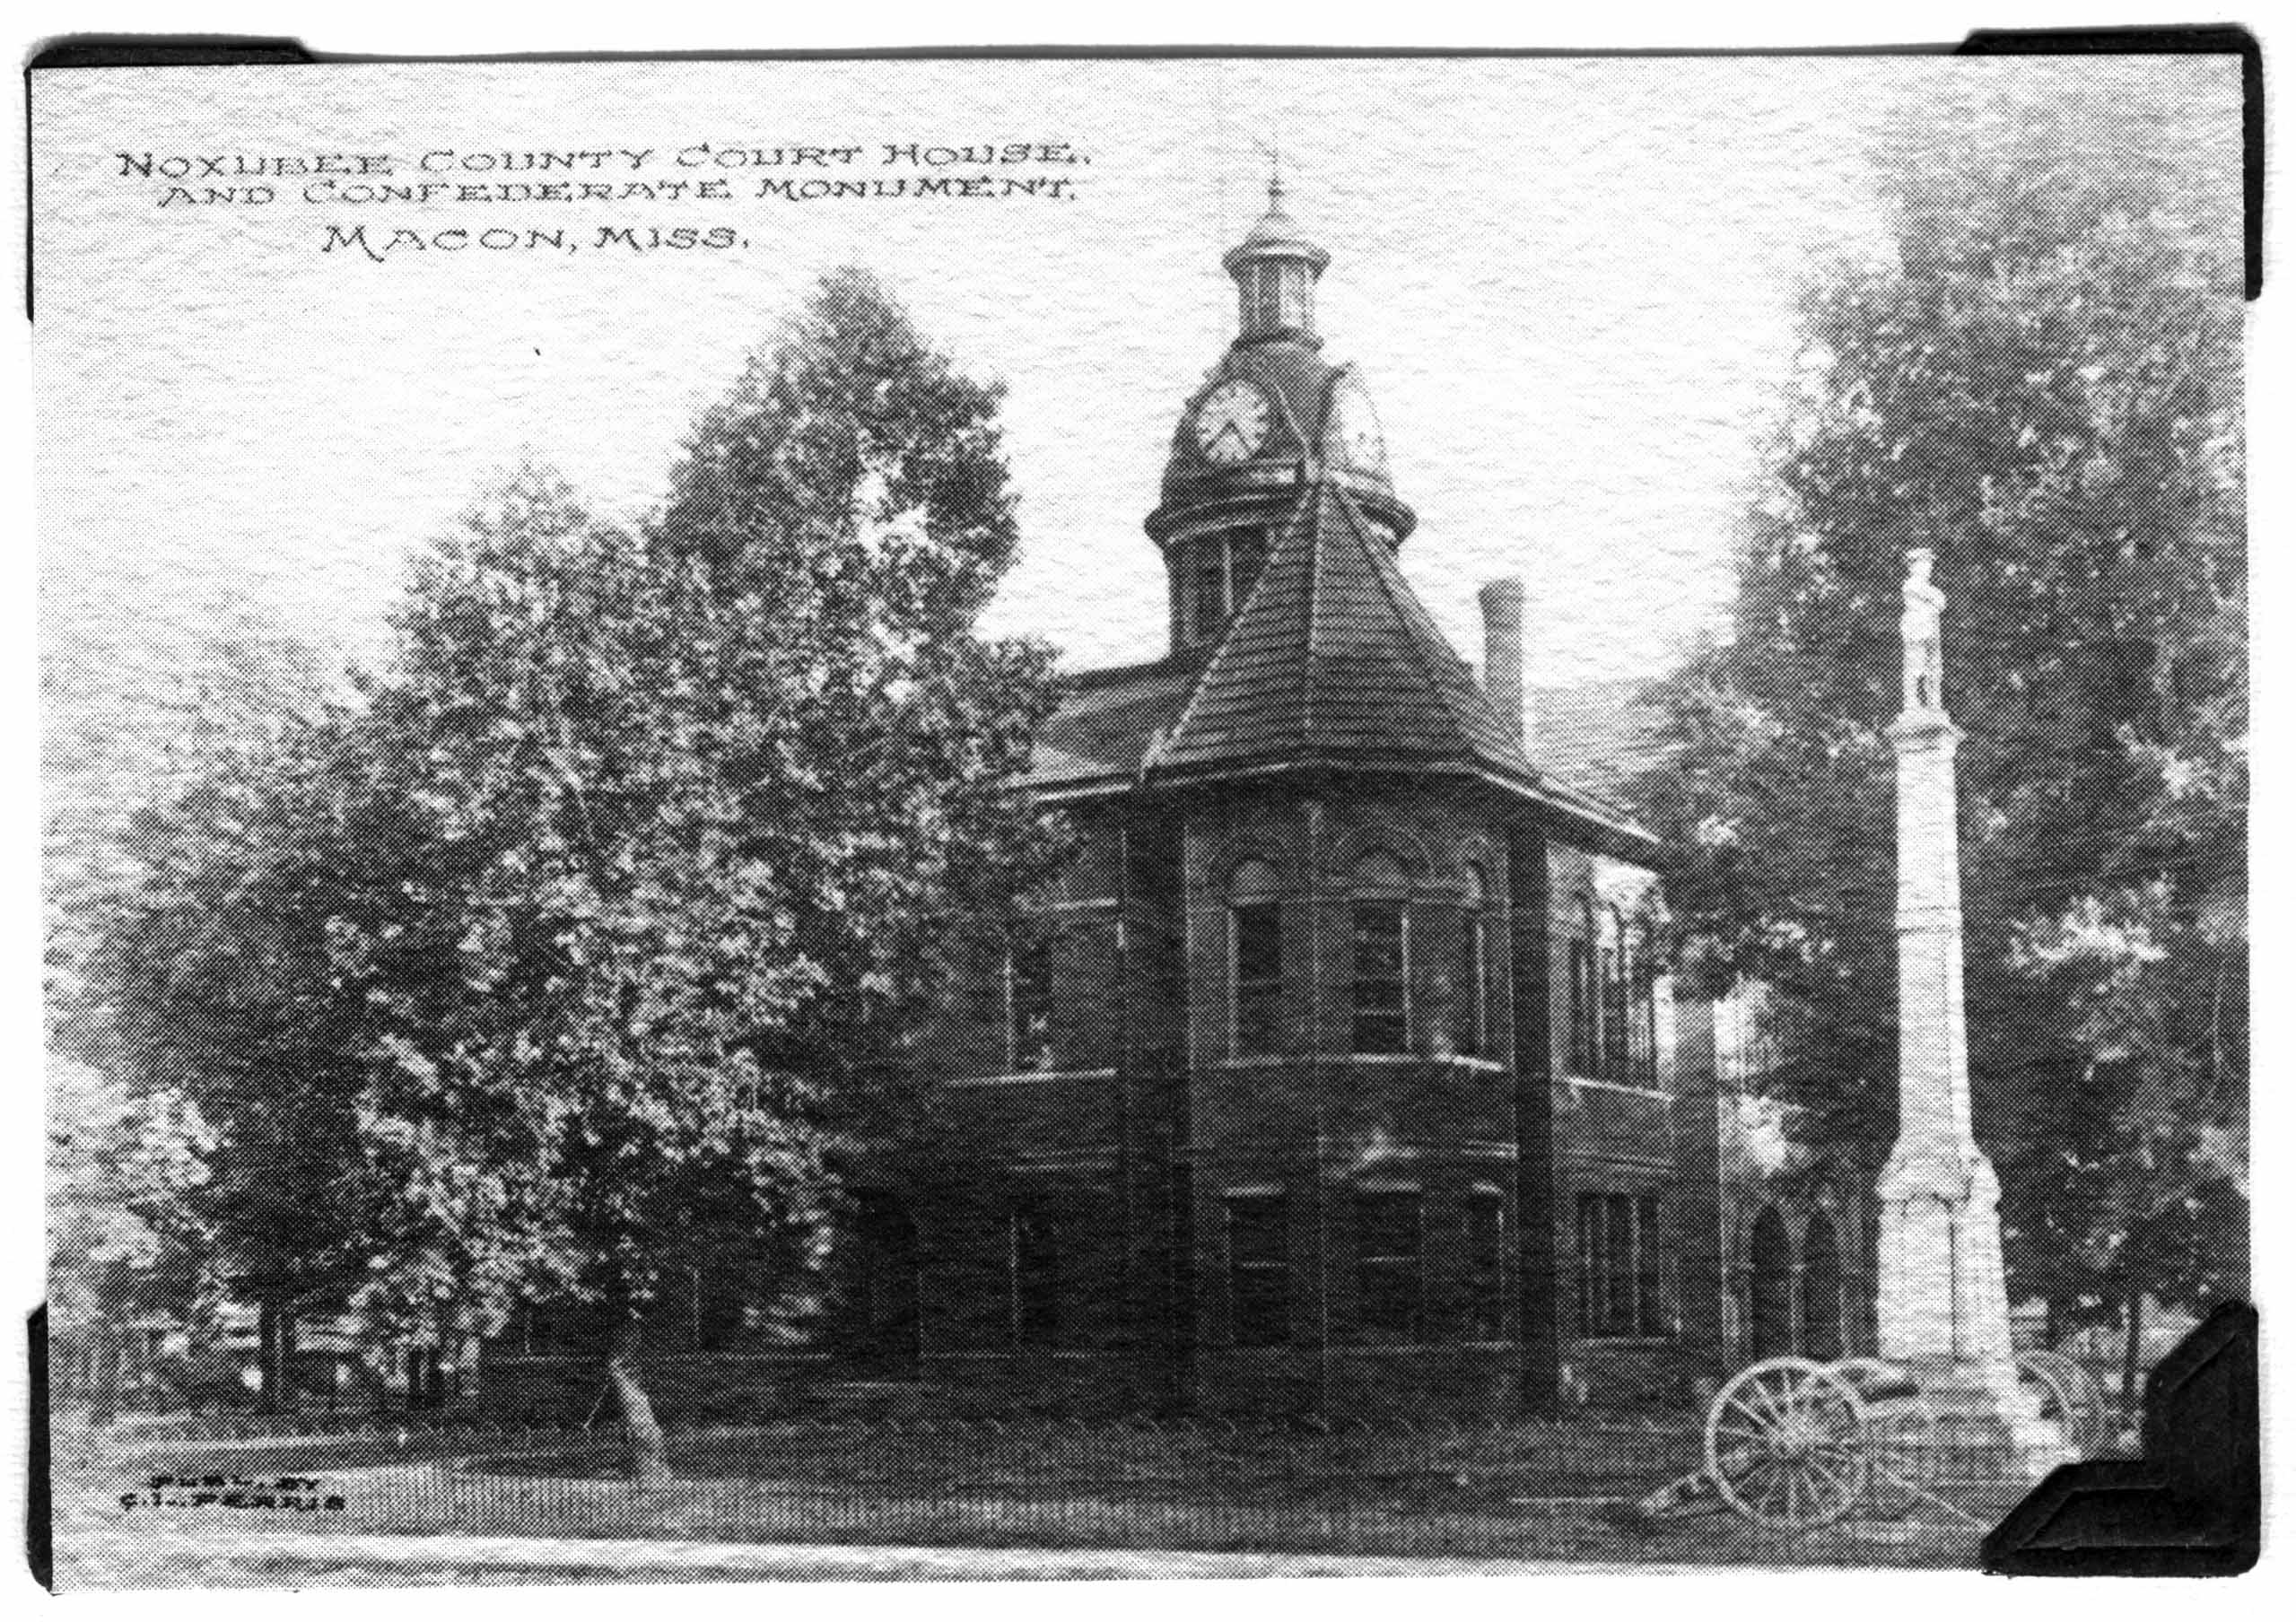 Noxubee County Court House and Confederate Monument in Macon, Mississippi